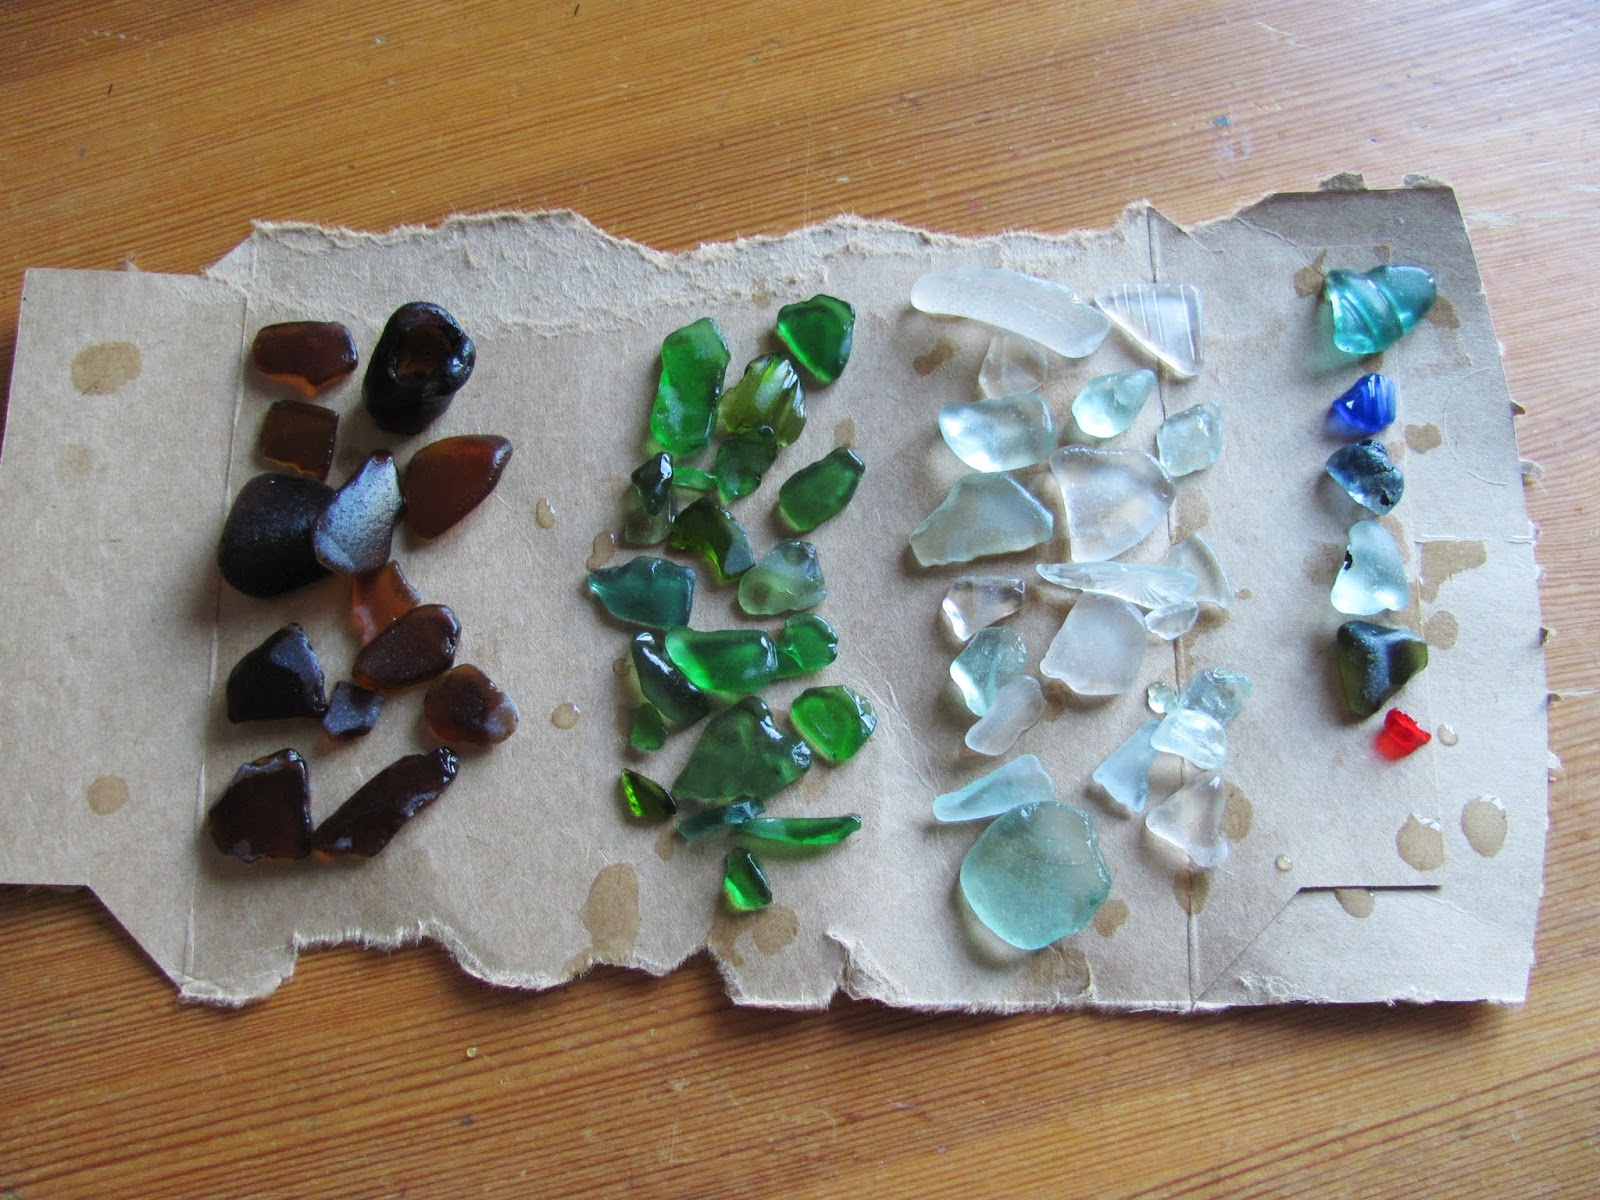 Brown, Green, White, and a small variety of other colors of sea glass on display in Dublin, Ireland